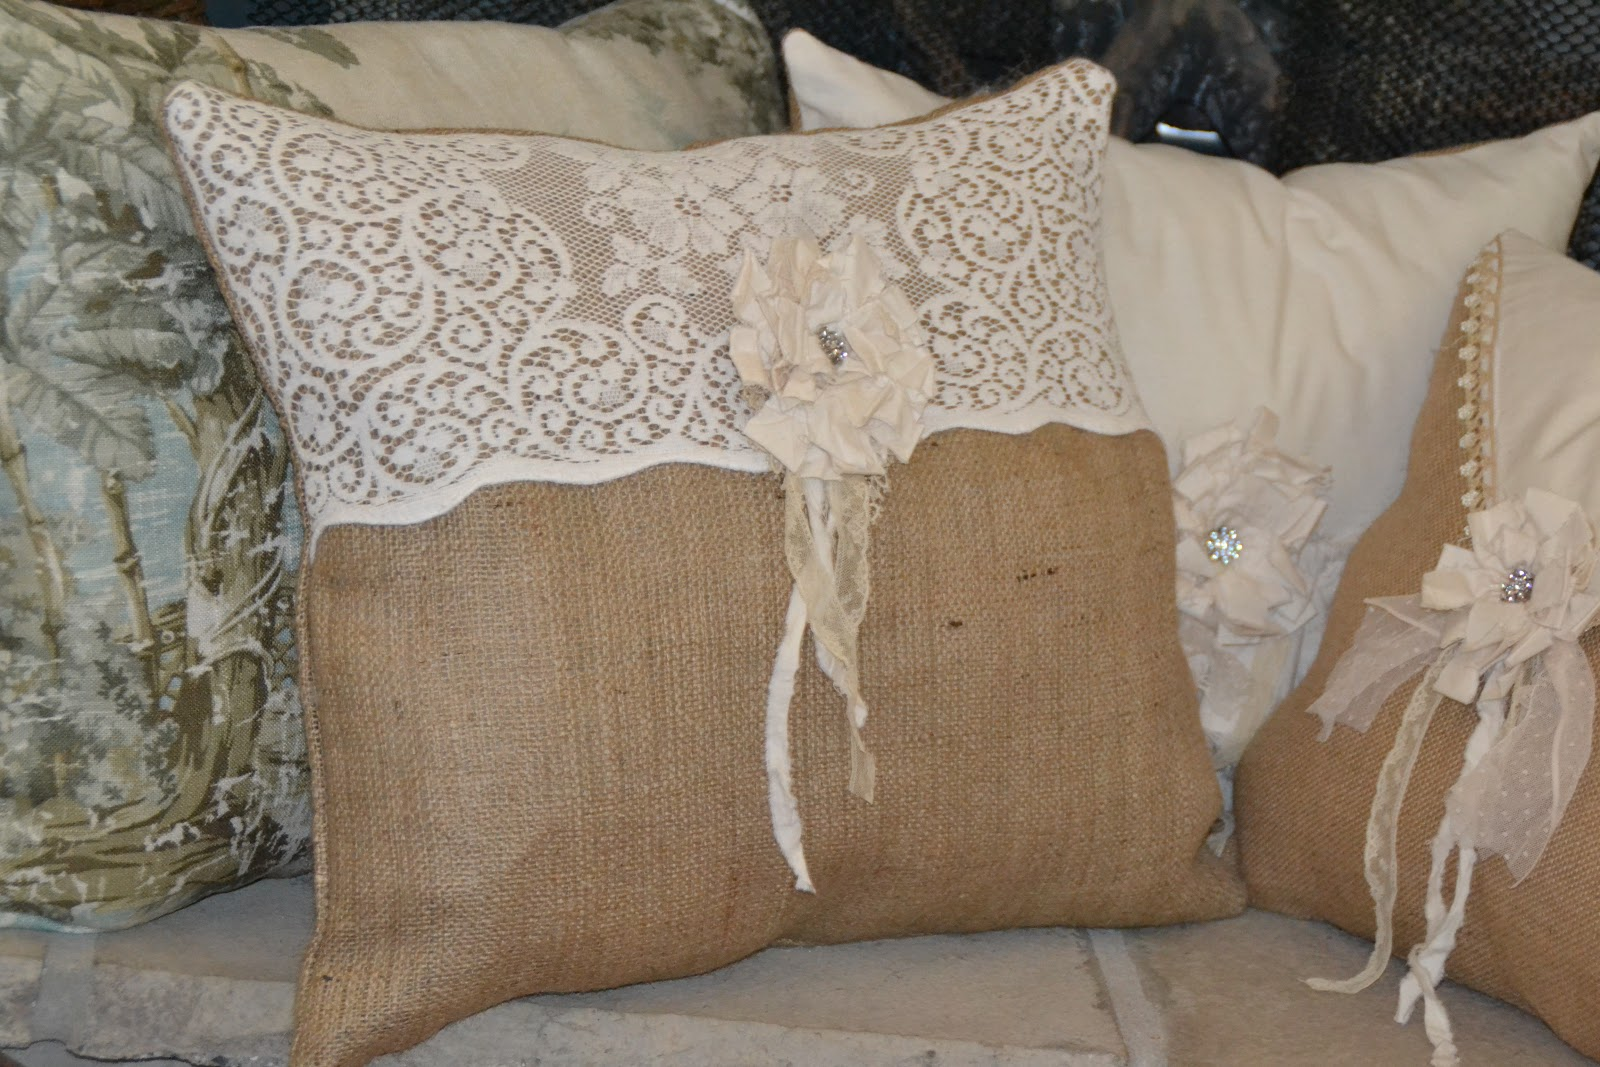 Lola Amp Bea Fancy Lace Tablecloth Pillows